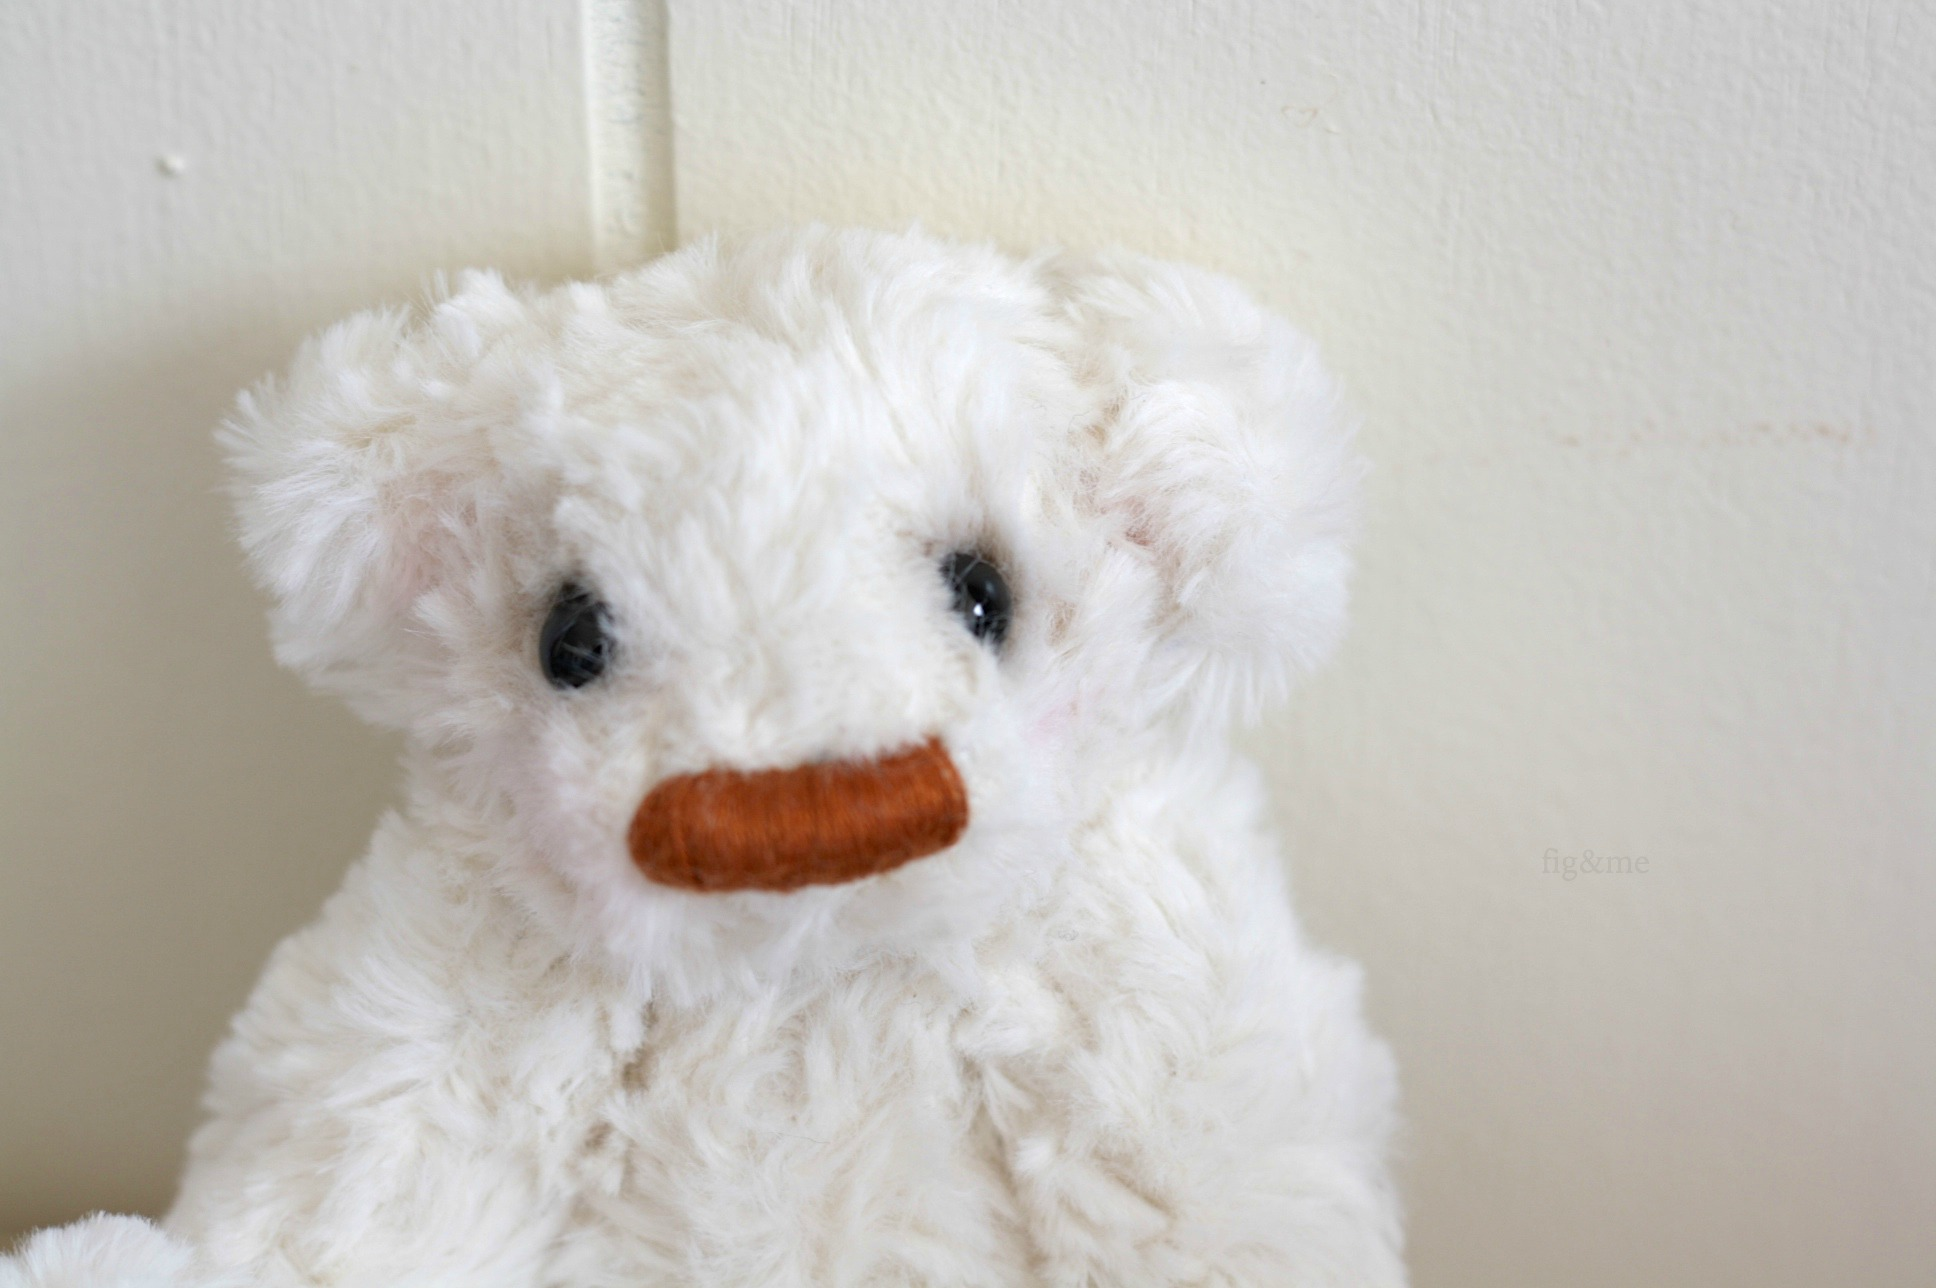 Little Tip, a broad nosed teddy by Fig and Me.